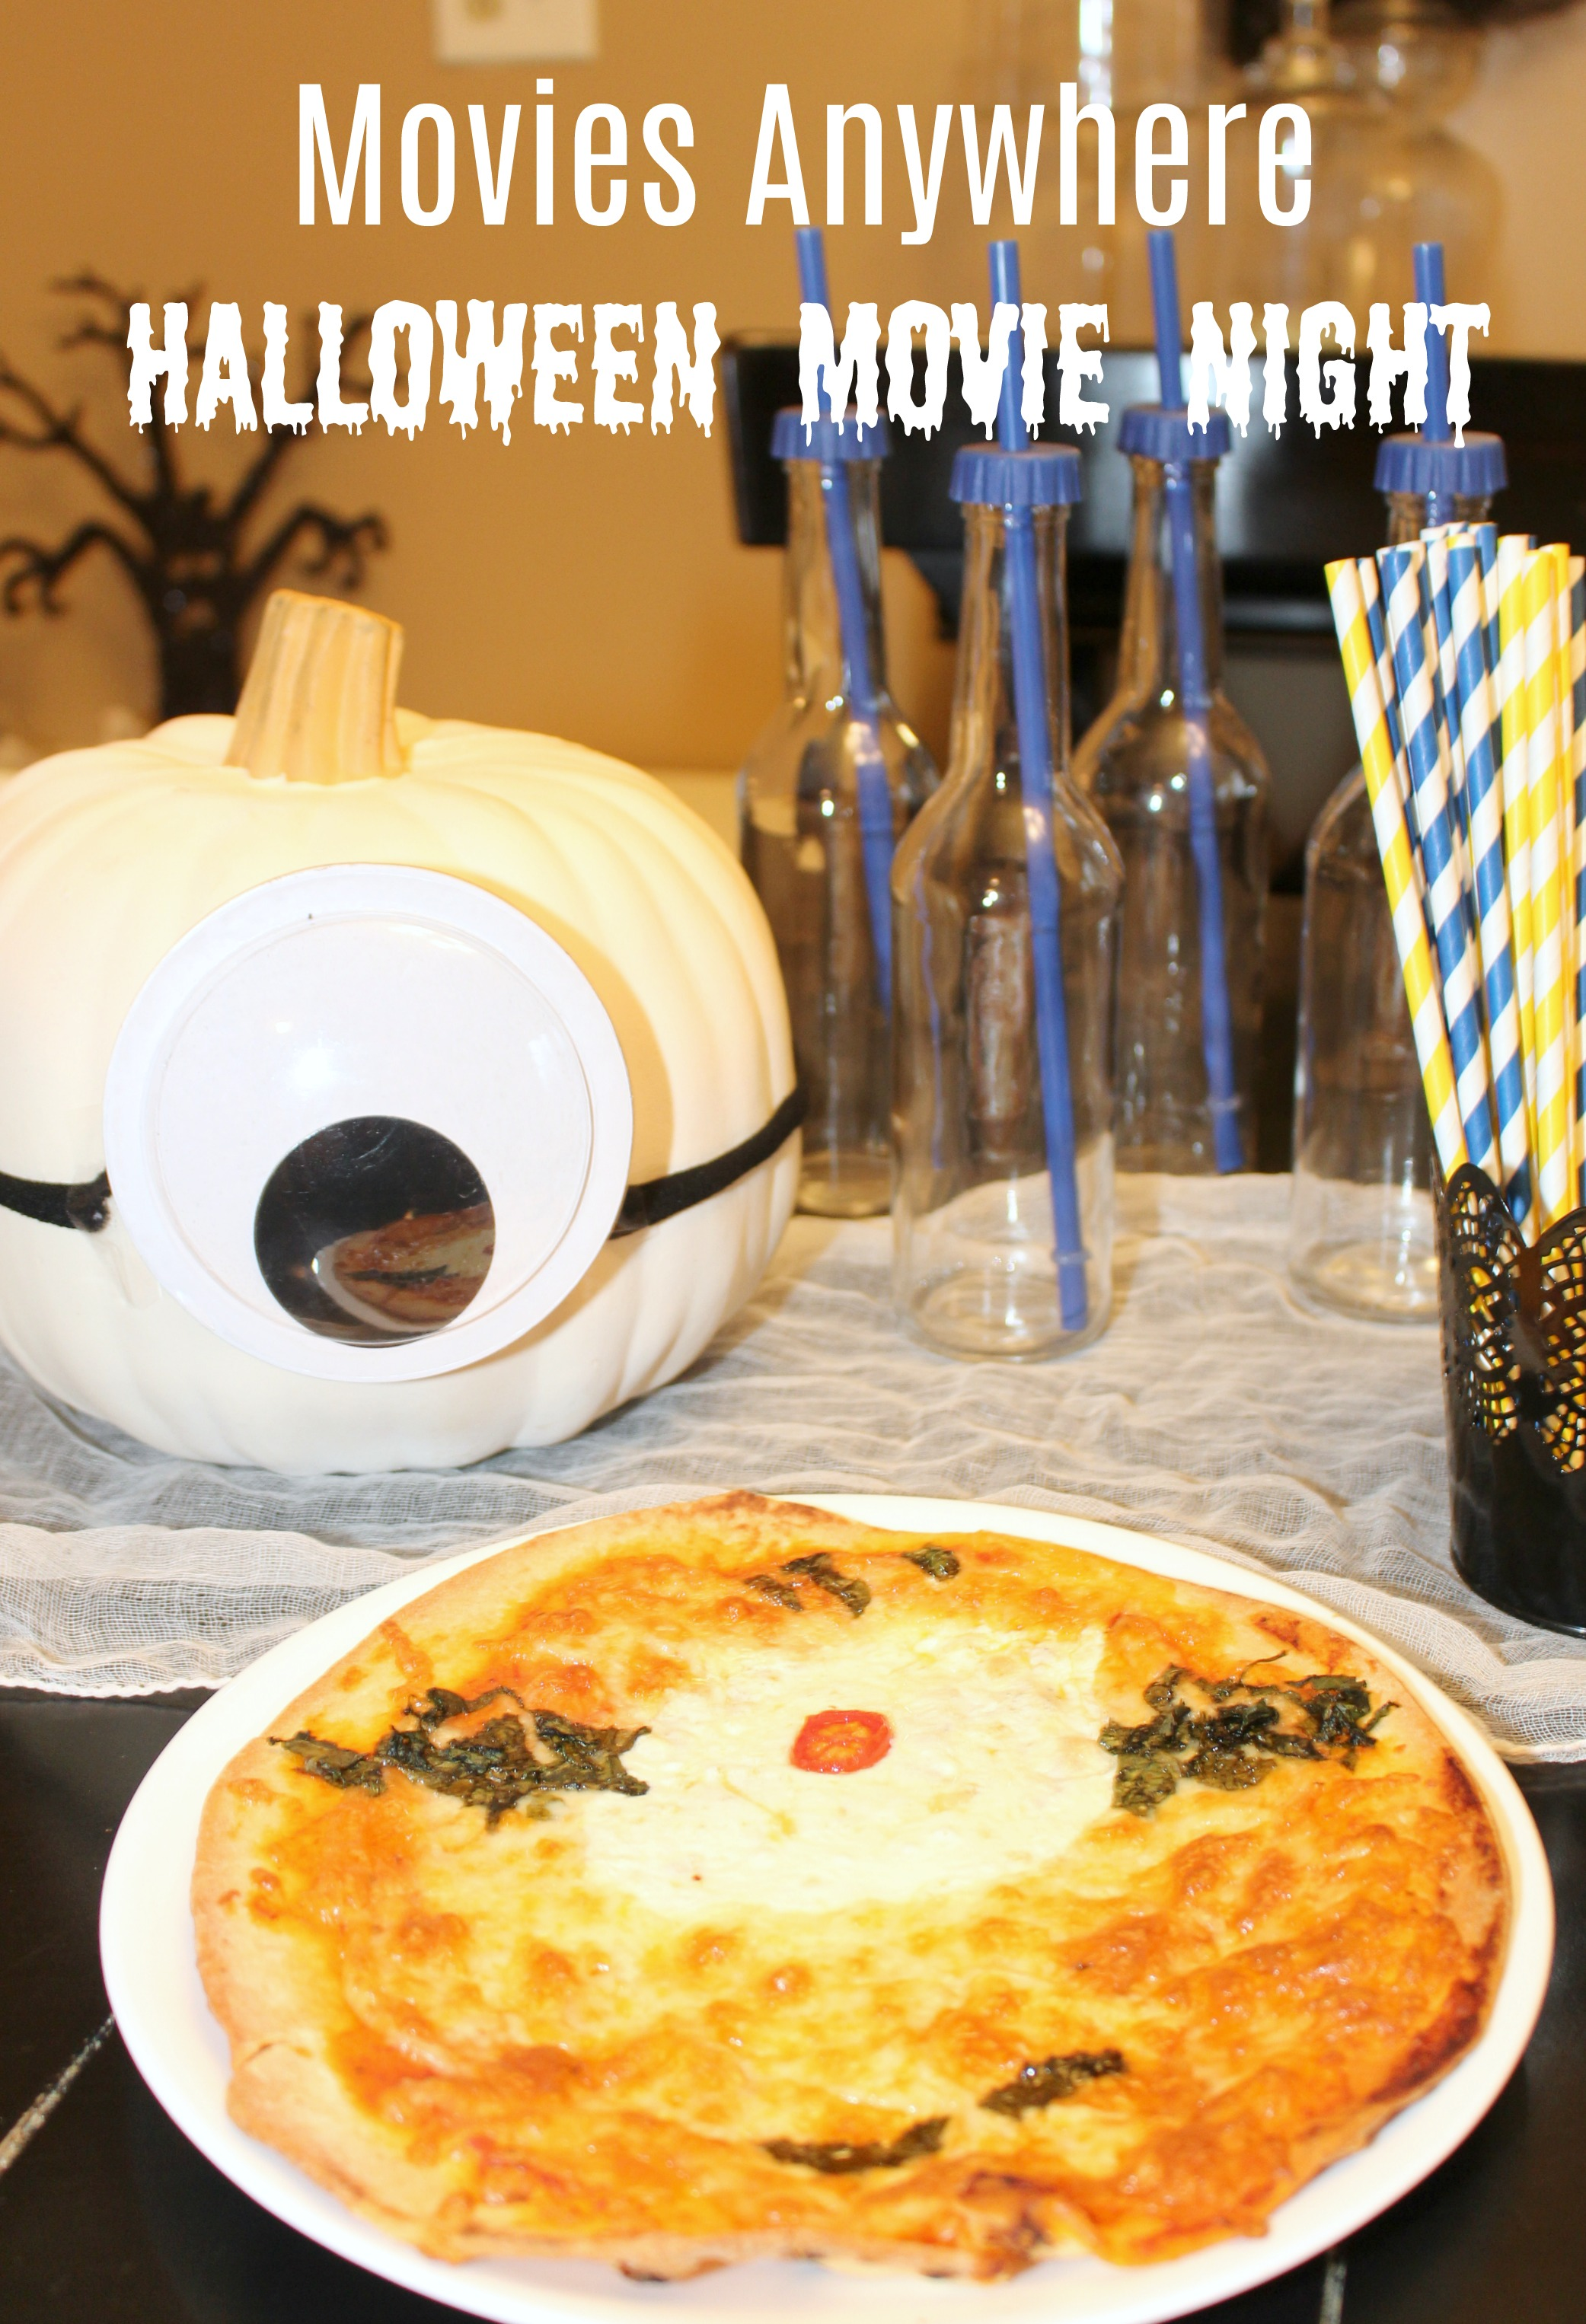 Movies Anywhere Halloween Movie Night